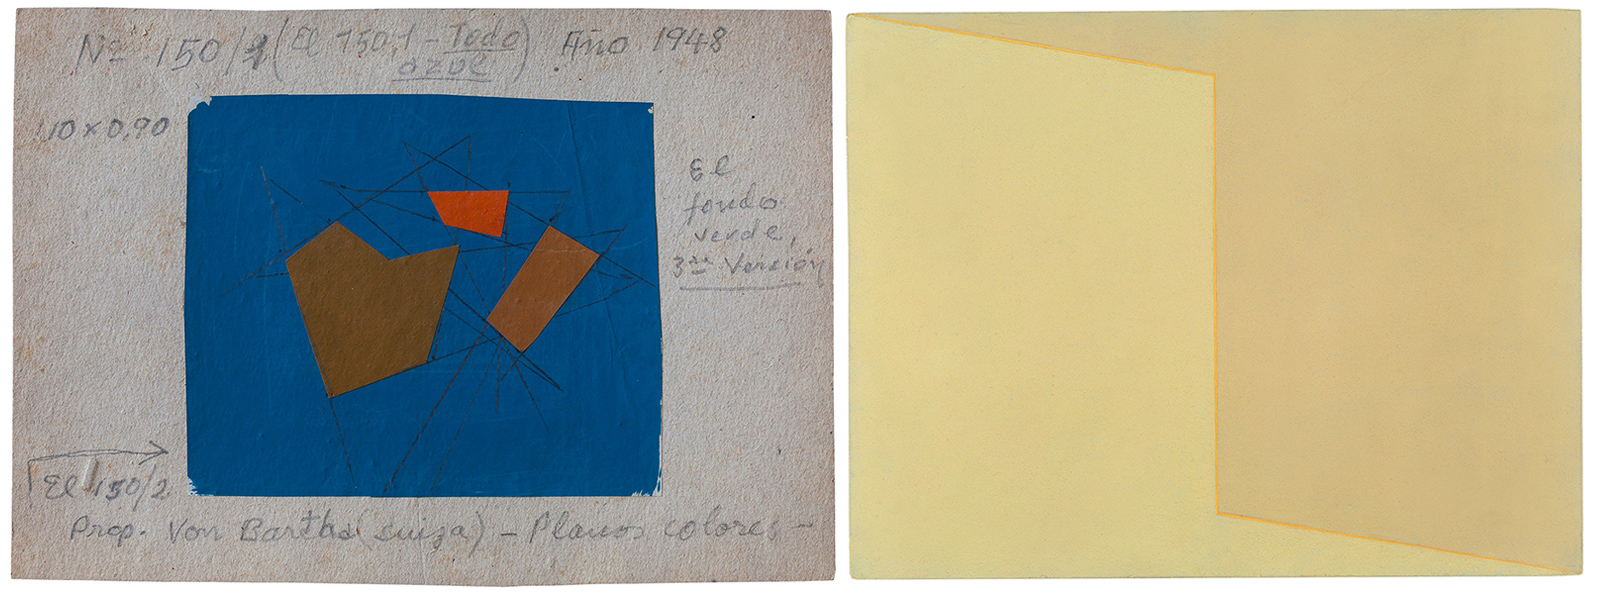 Two geometrical artworks side by side: one showing brown geometric forms on a blue rectangle, the other showing a pale yellow painting with a seam down the center